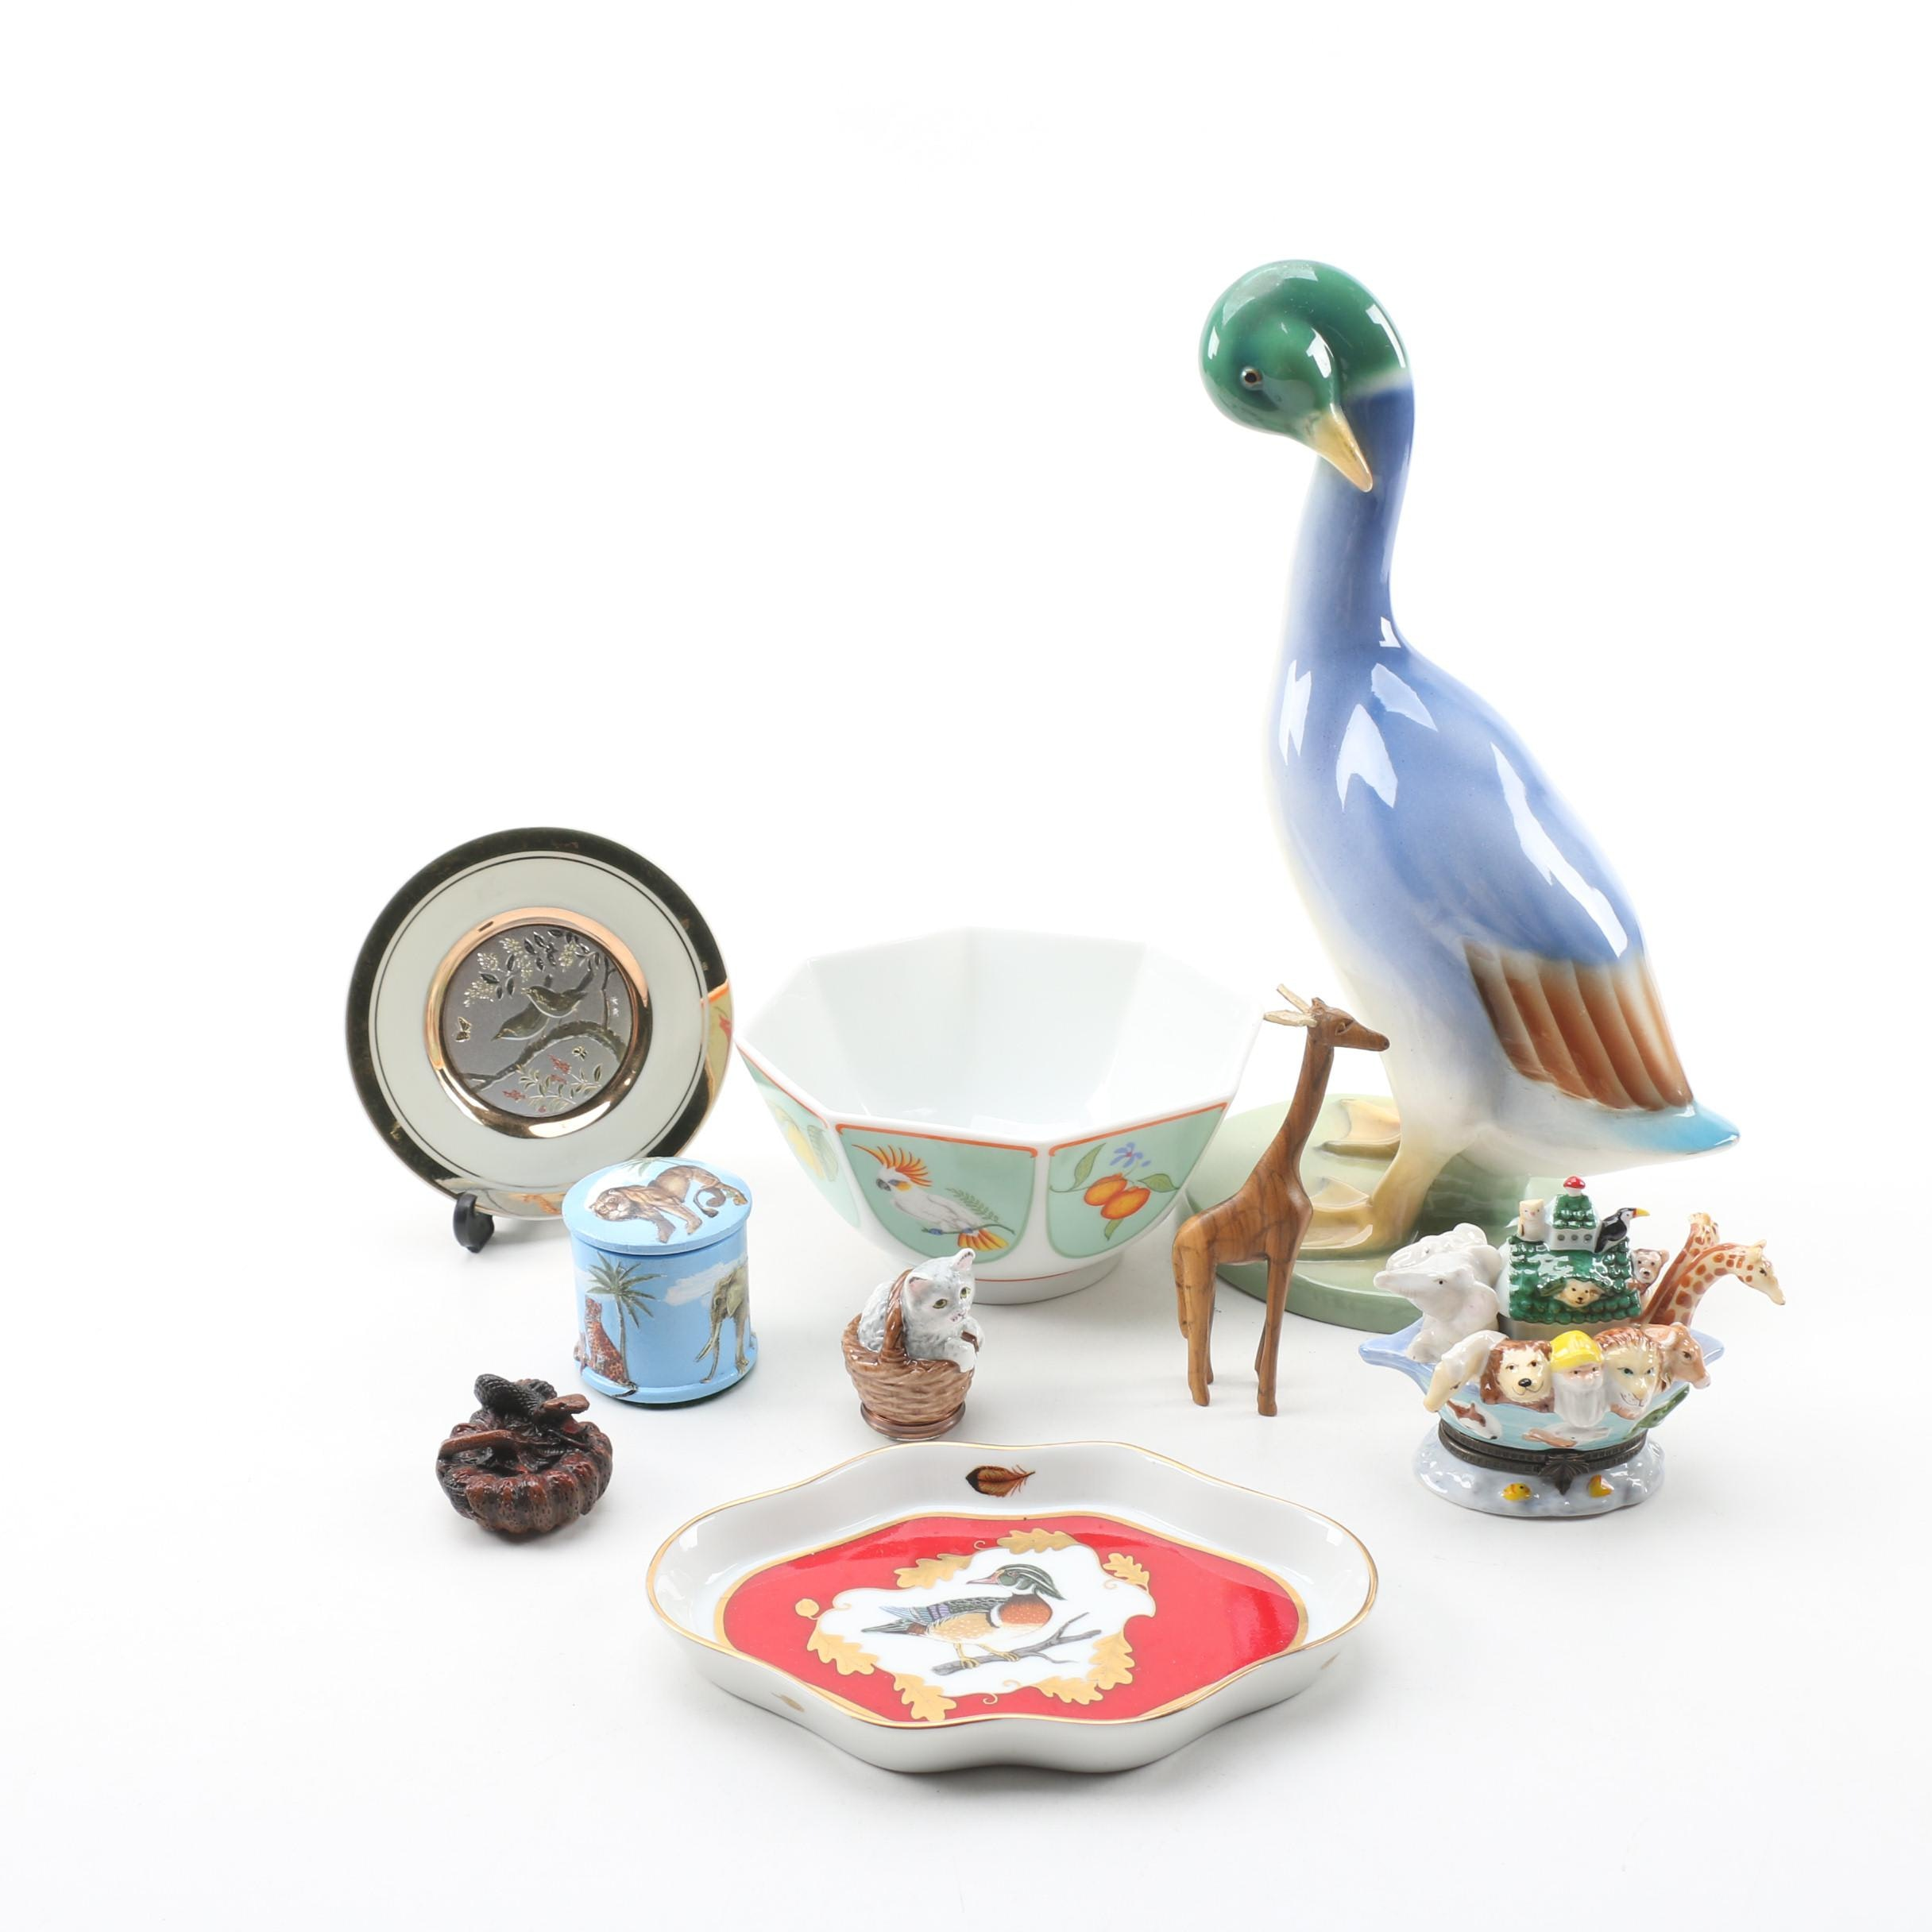 "Italian Ceramic Duck Figurine with Lynn Chase ""Monkey Business"" Bowl and More"